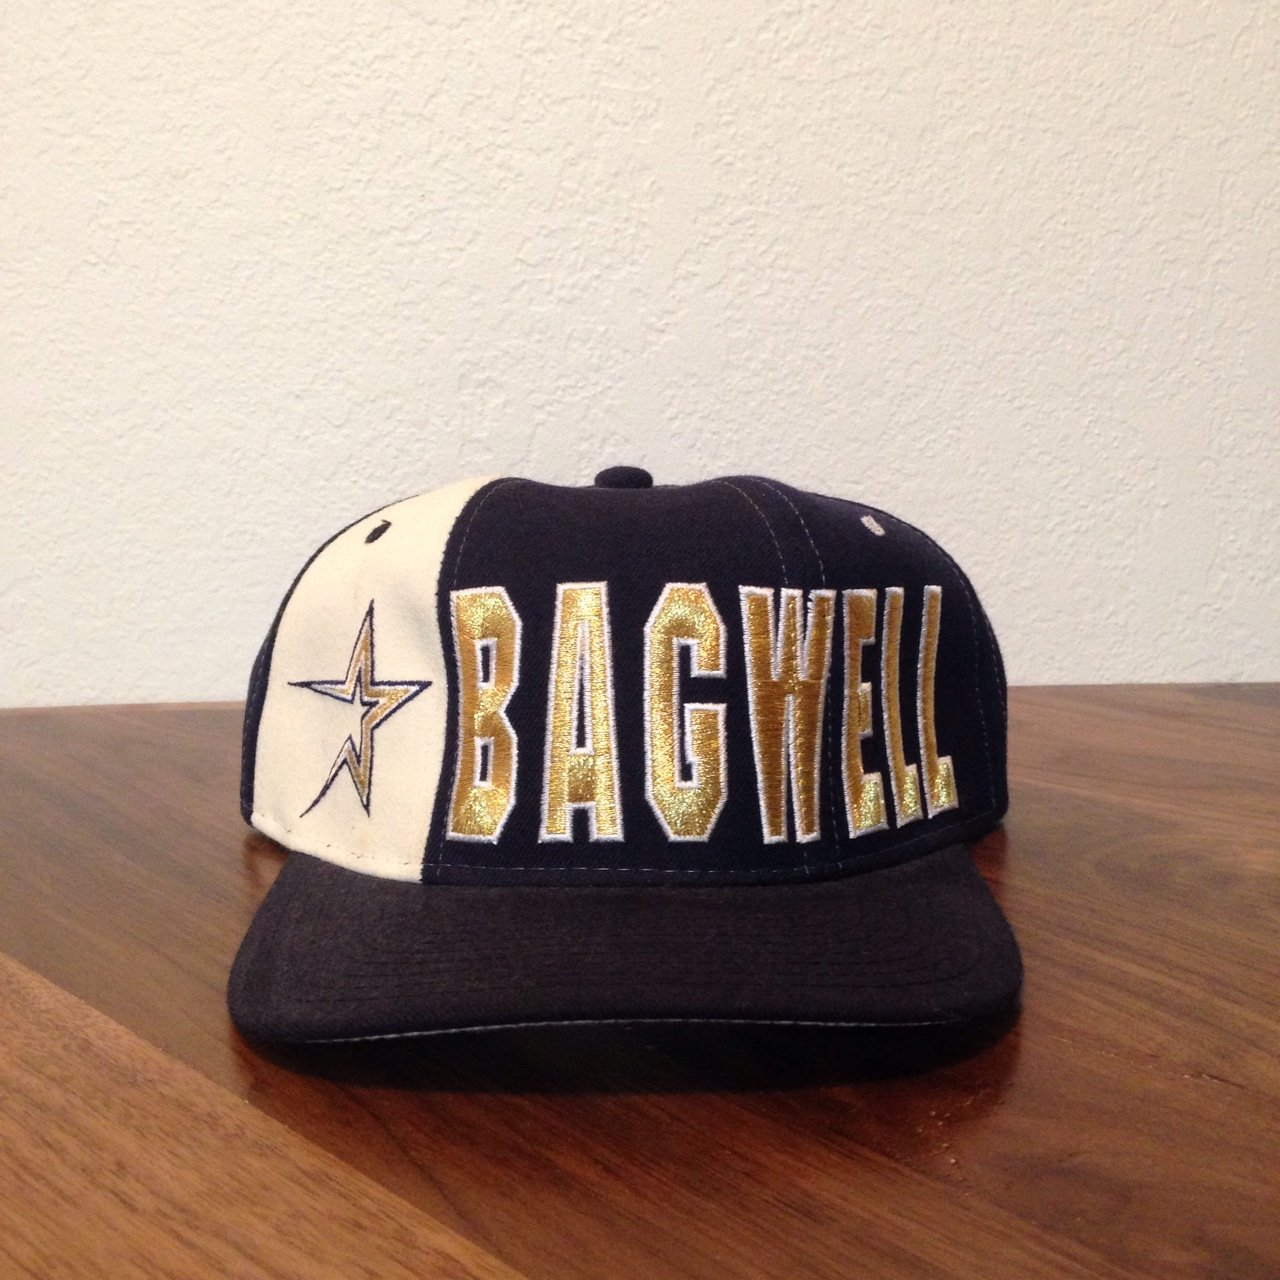 031897f5c1a Vintage Jeff Bagwell Houston Astros snapback by Starter. and - Depop